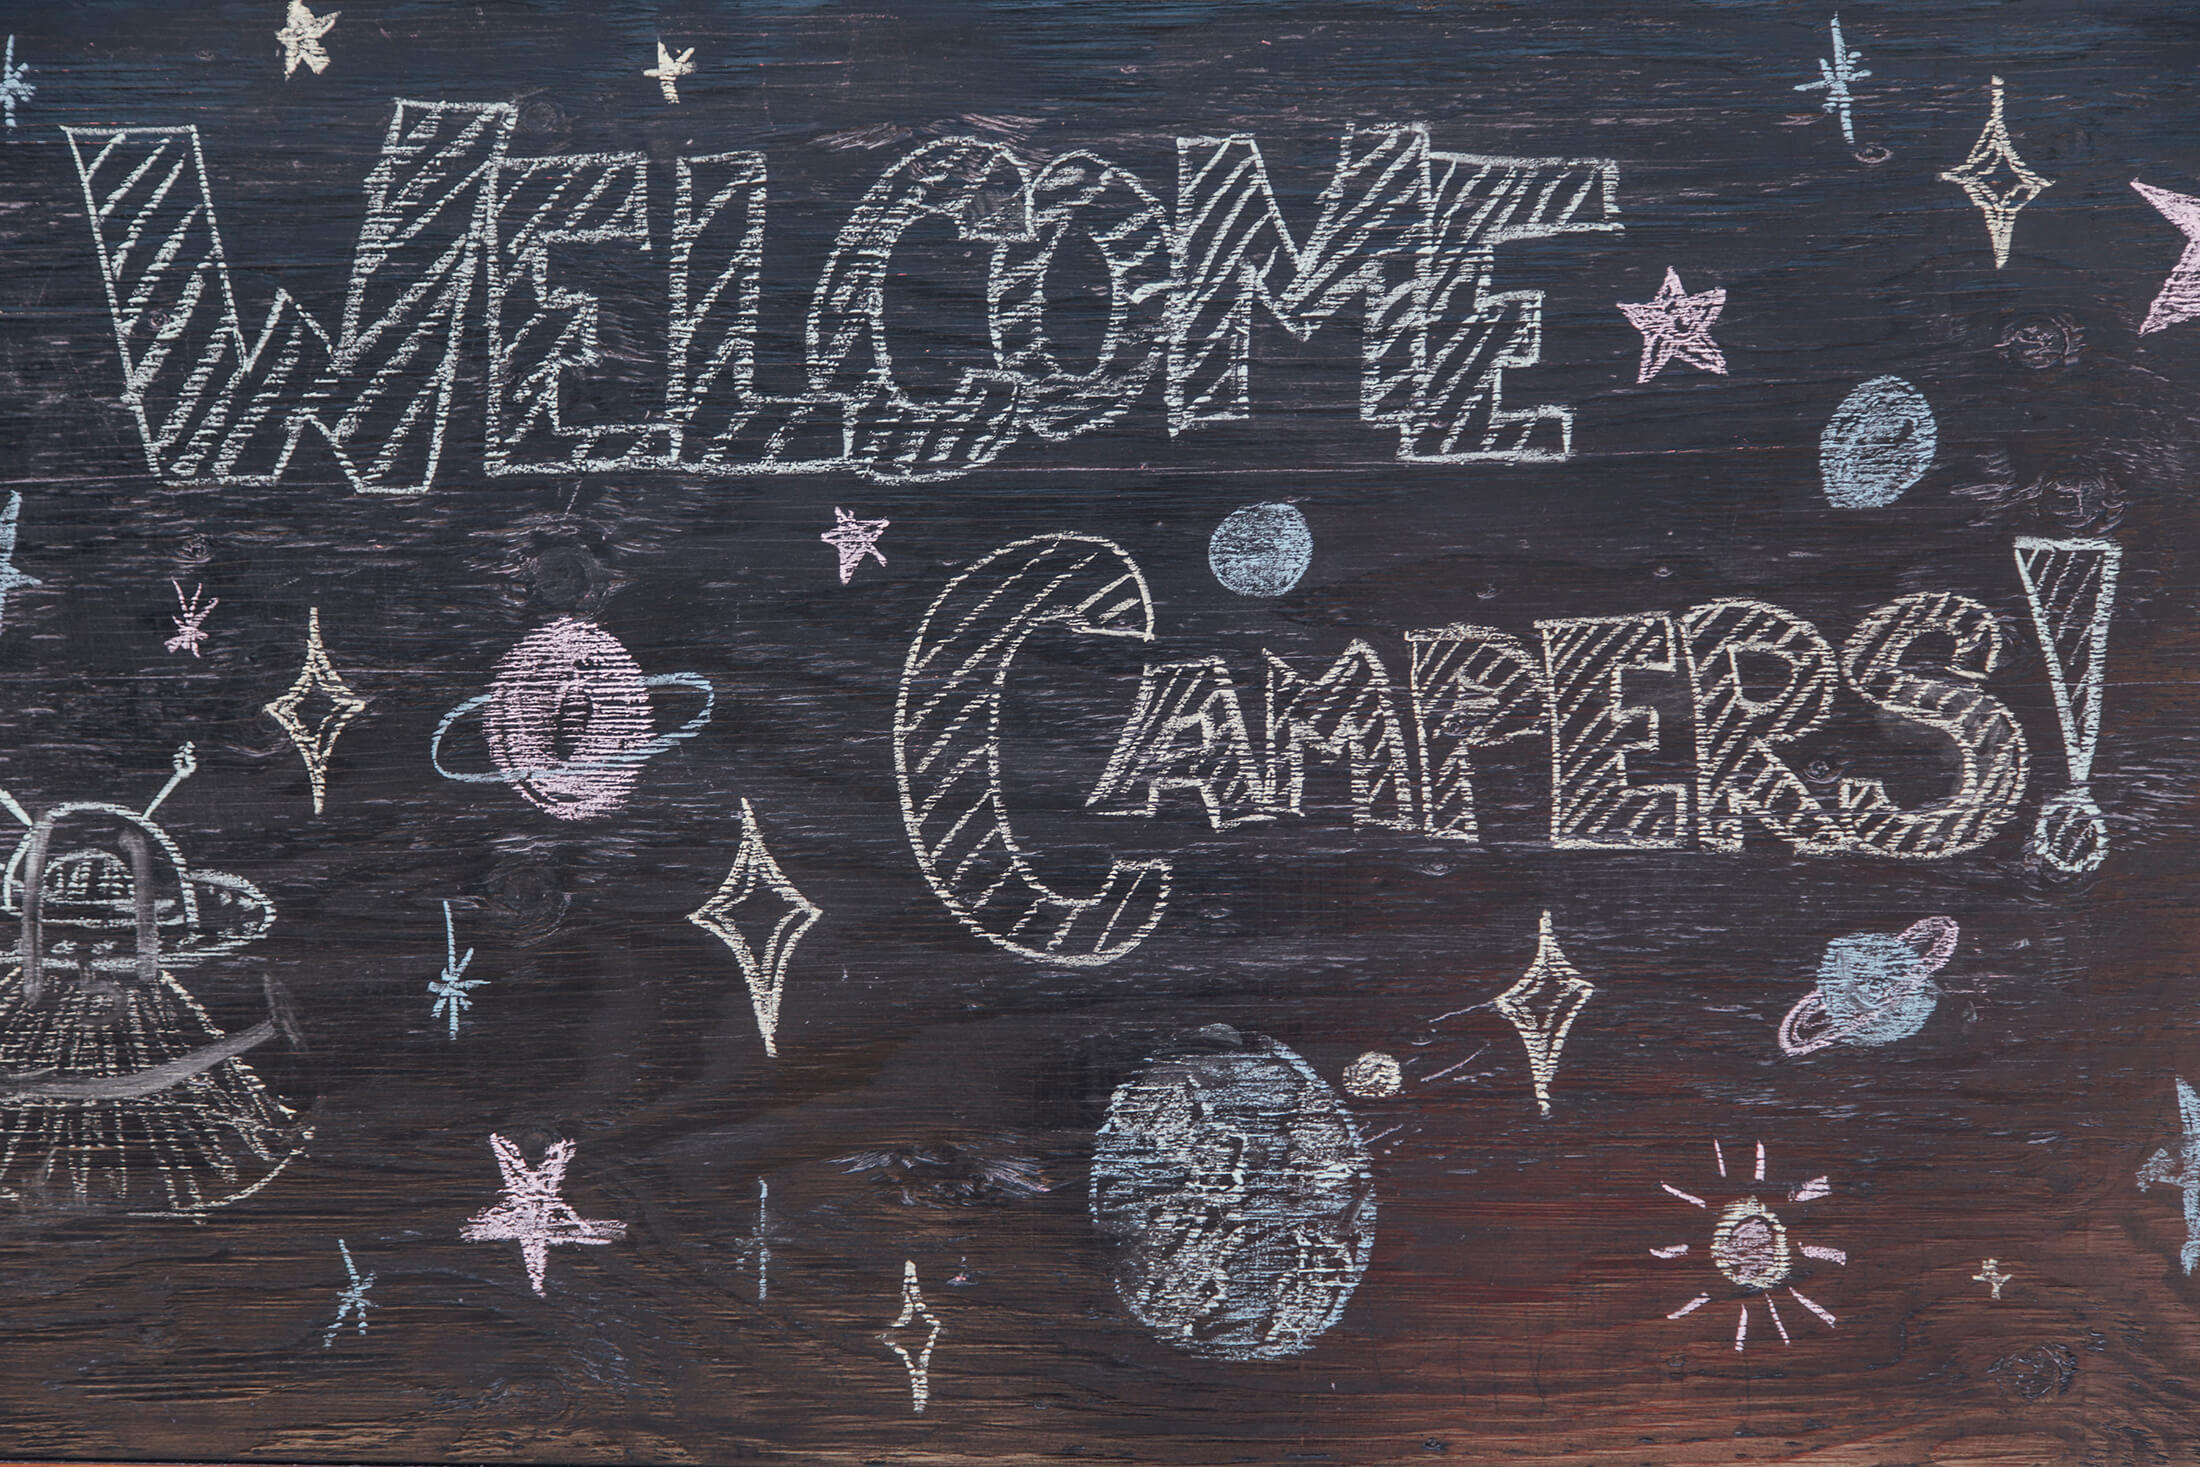 Welcome Campers!